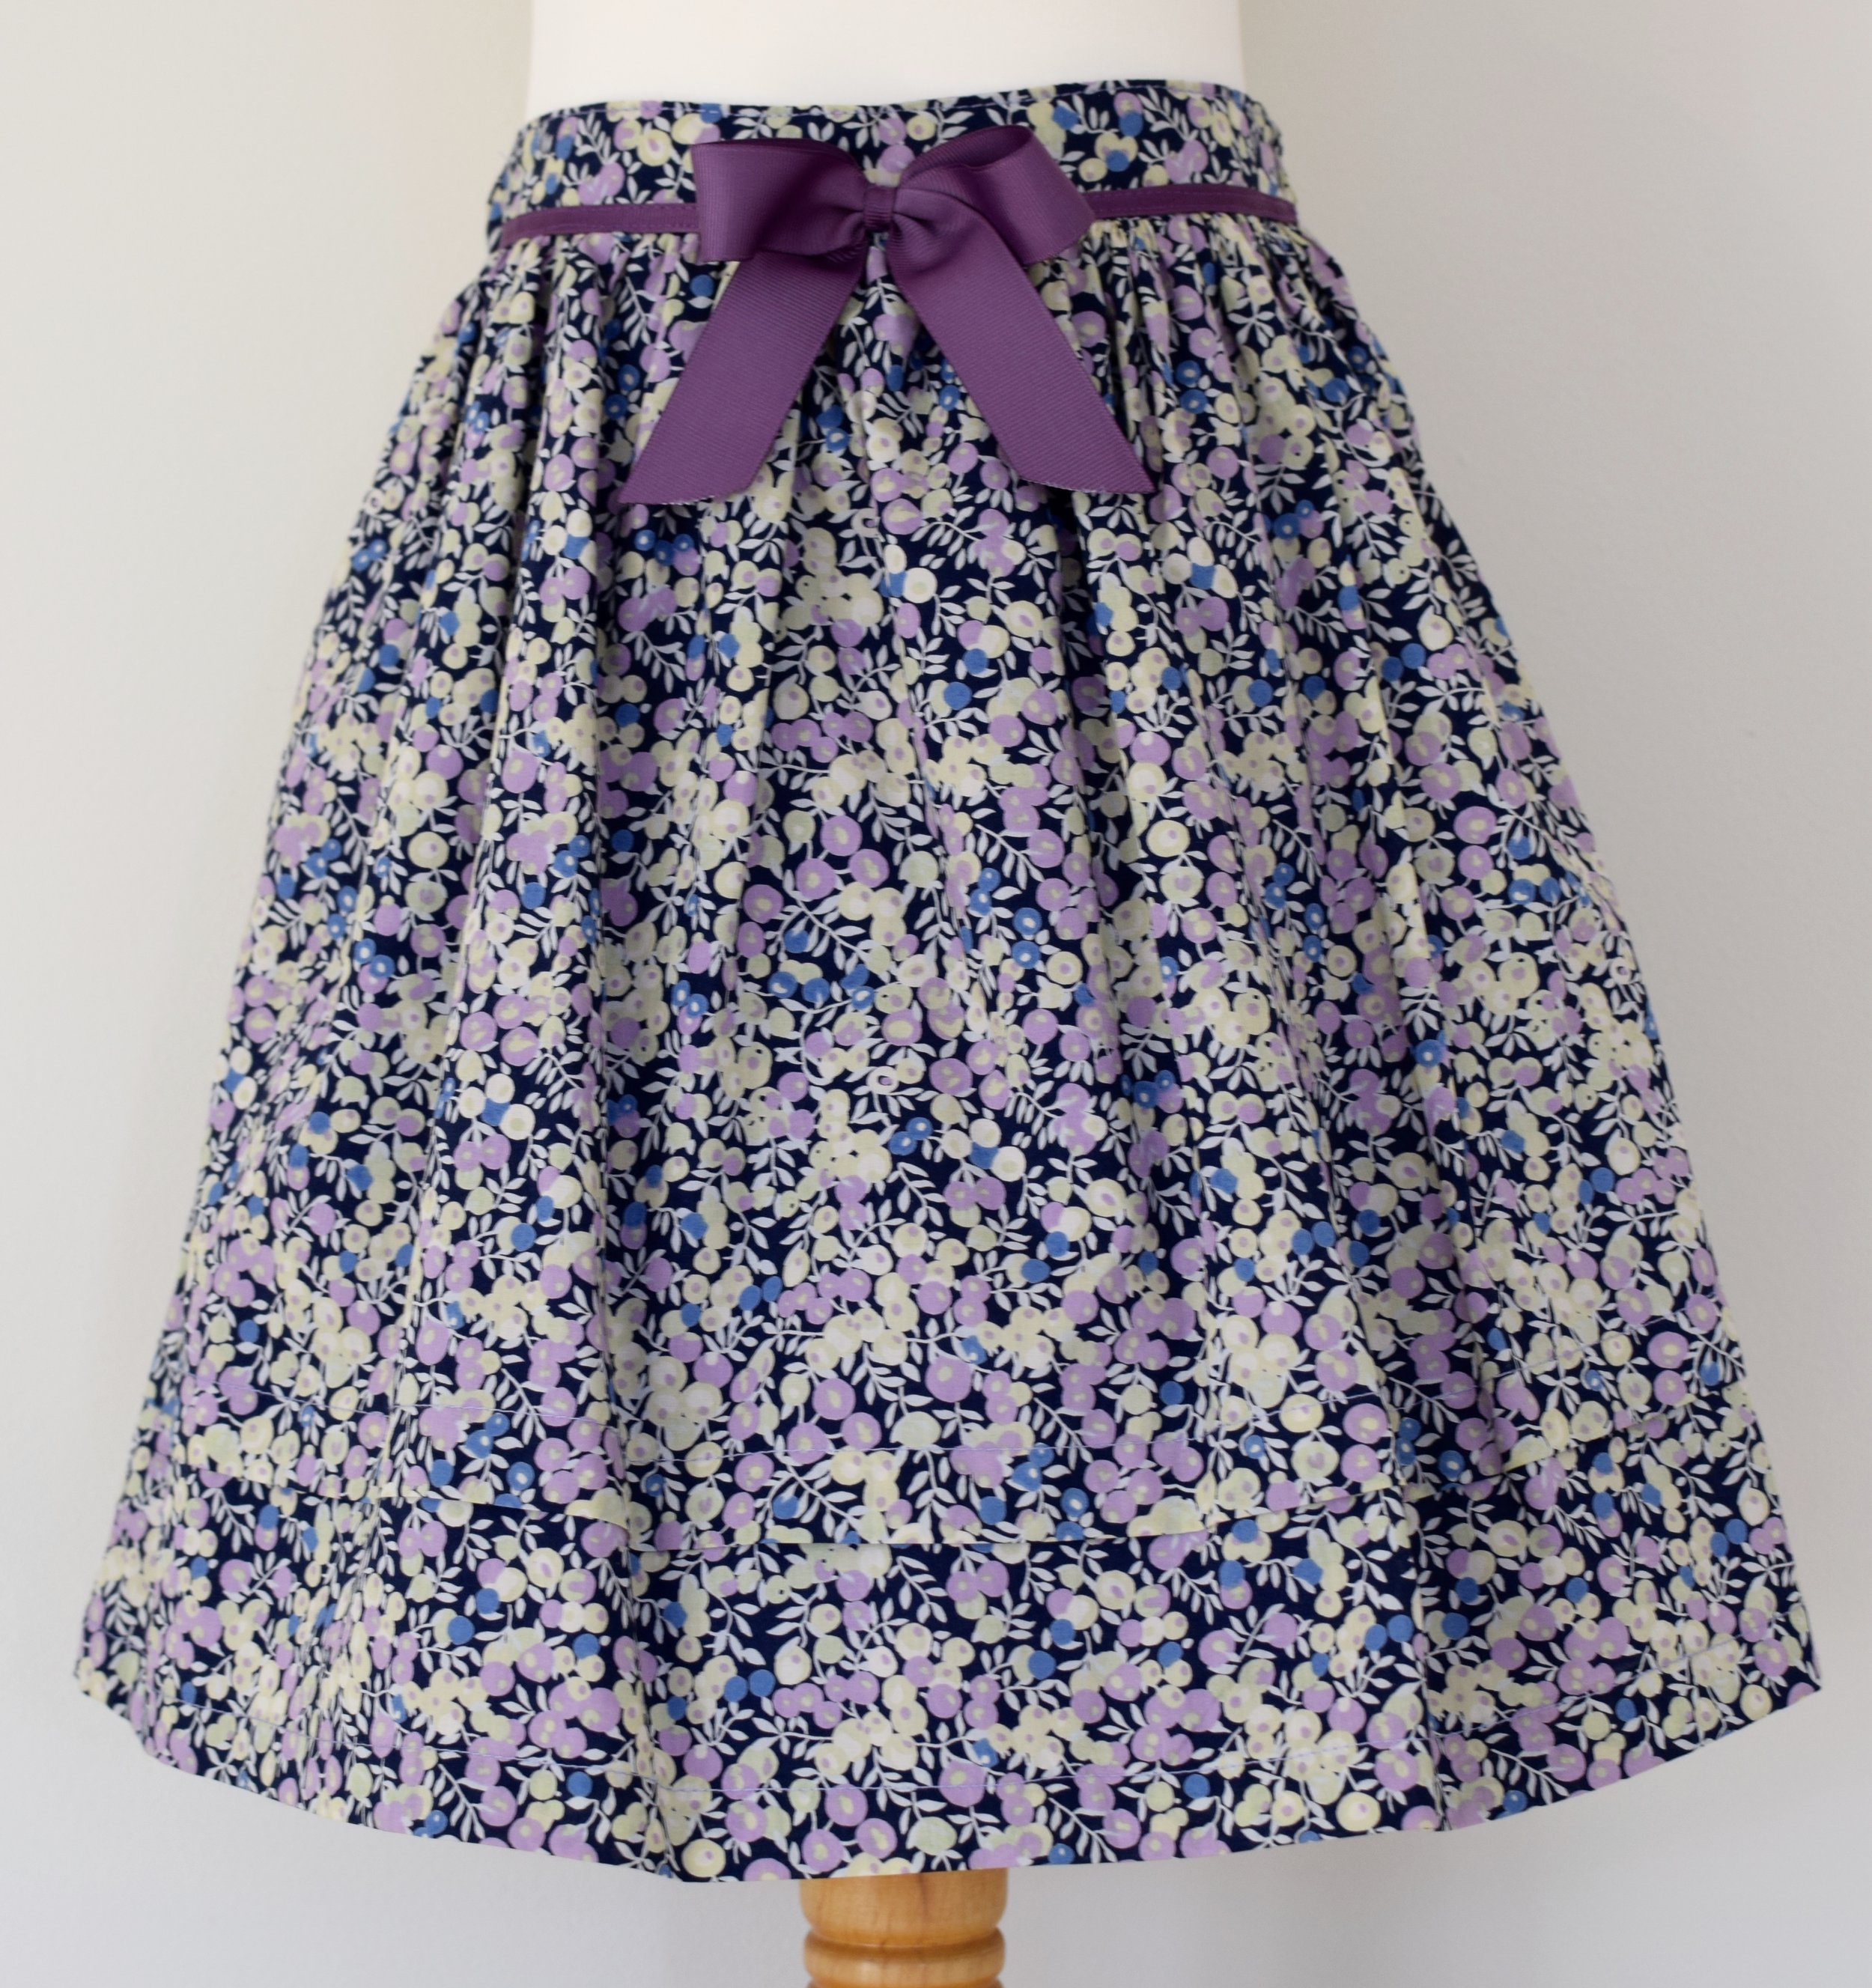 Wiltshire skirt    Description: gathered skirt, contrasting purple   grosgrain ribbon bow, concealed zip at back, adjustable elastic waist   Sizes: available in 6y  £34